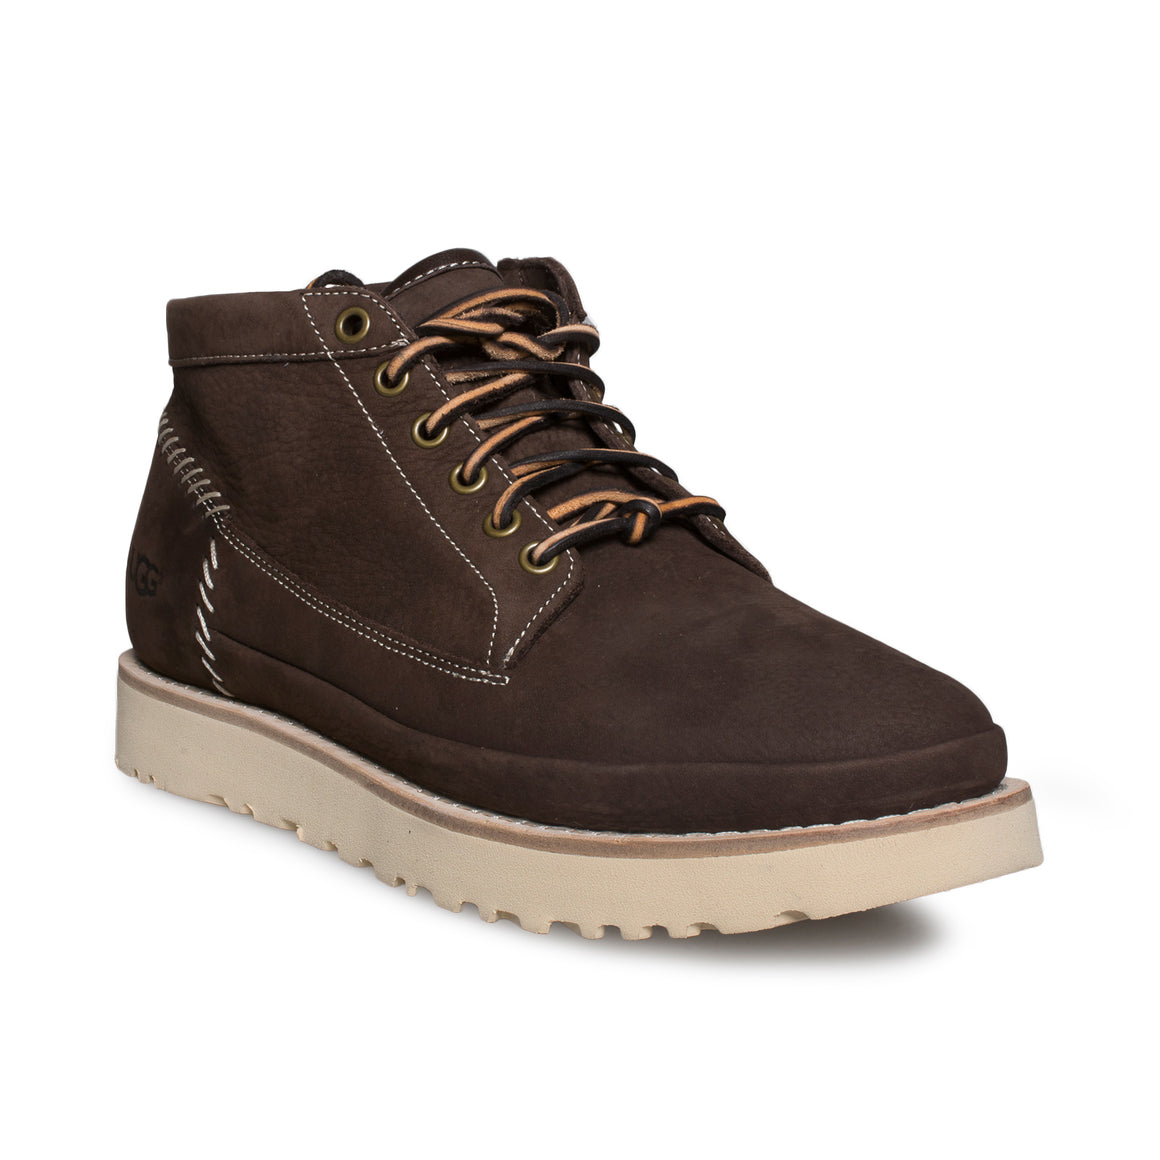 UGG Campfire Trail Stout Boots - Men's